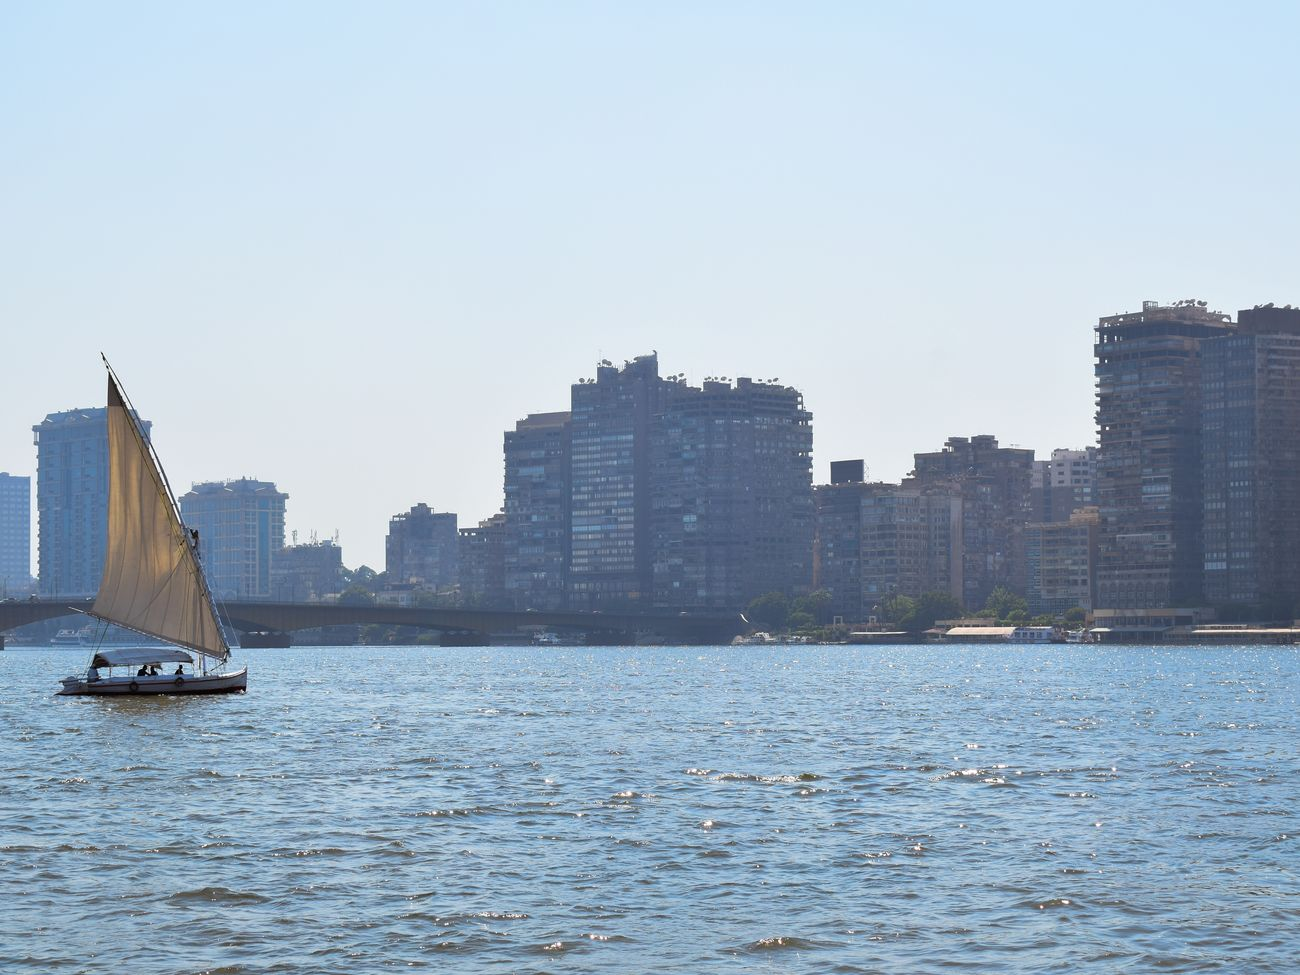 This photo was taken on the Nile from the bow of a rocking Boat. Egypt Cairo Cityscape Urban Skyline Boats Nikon River Nile Taking Risks